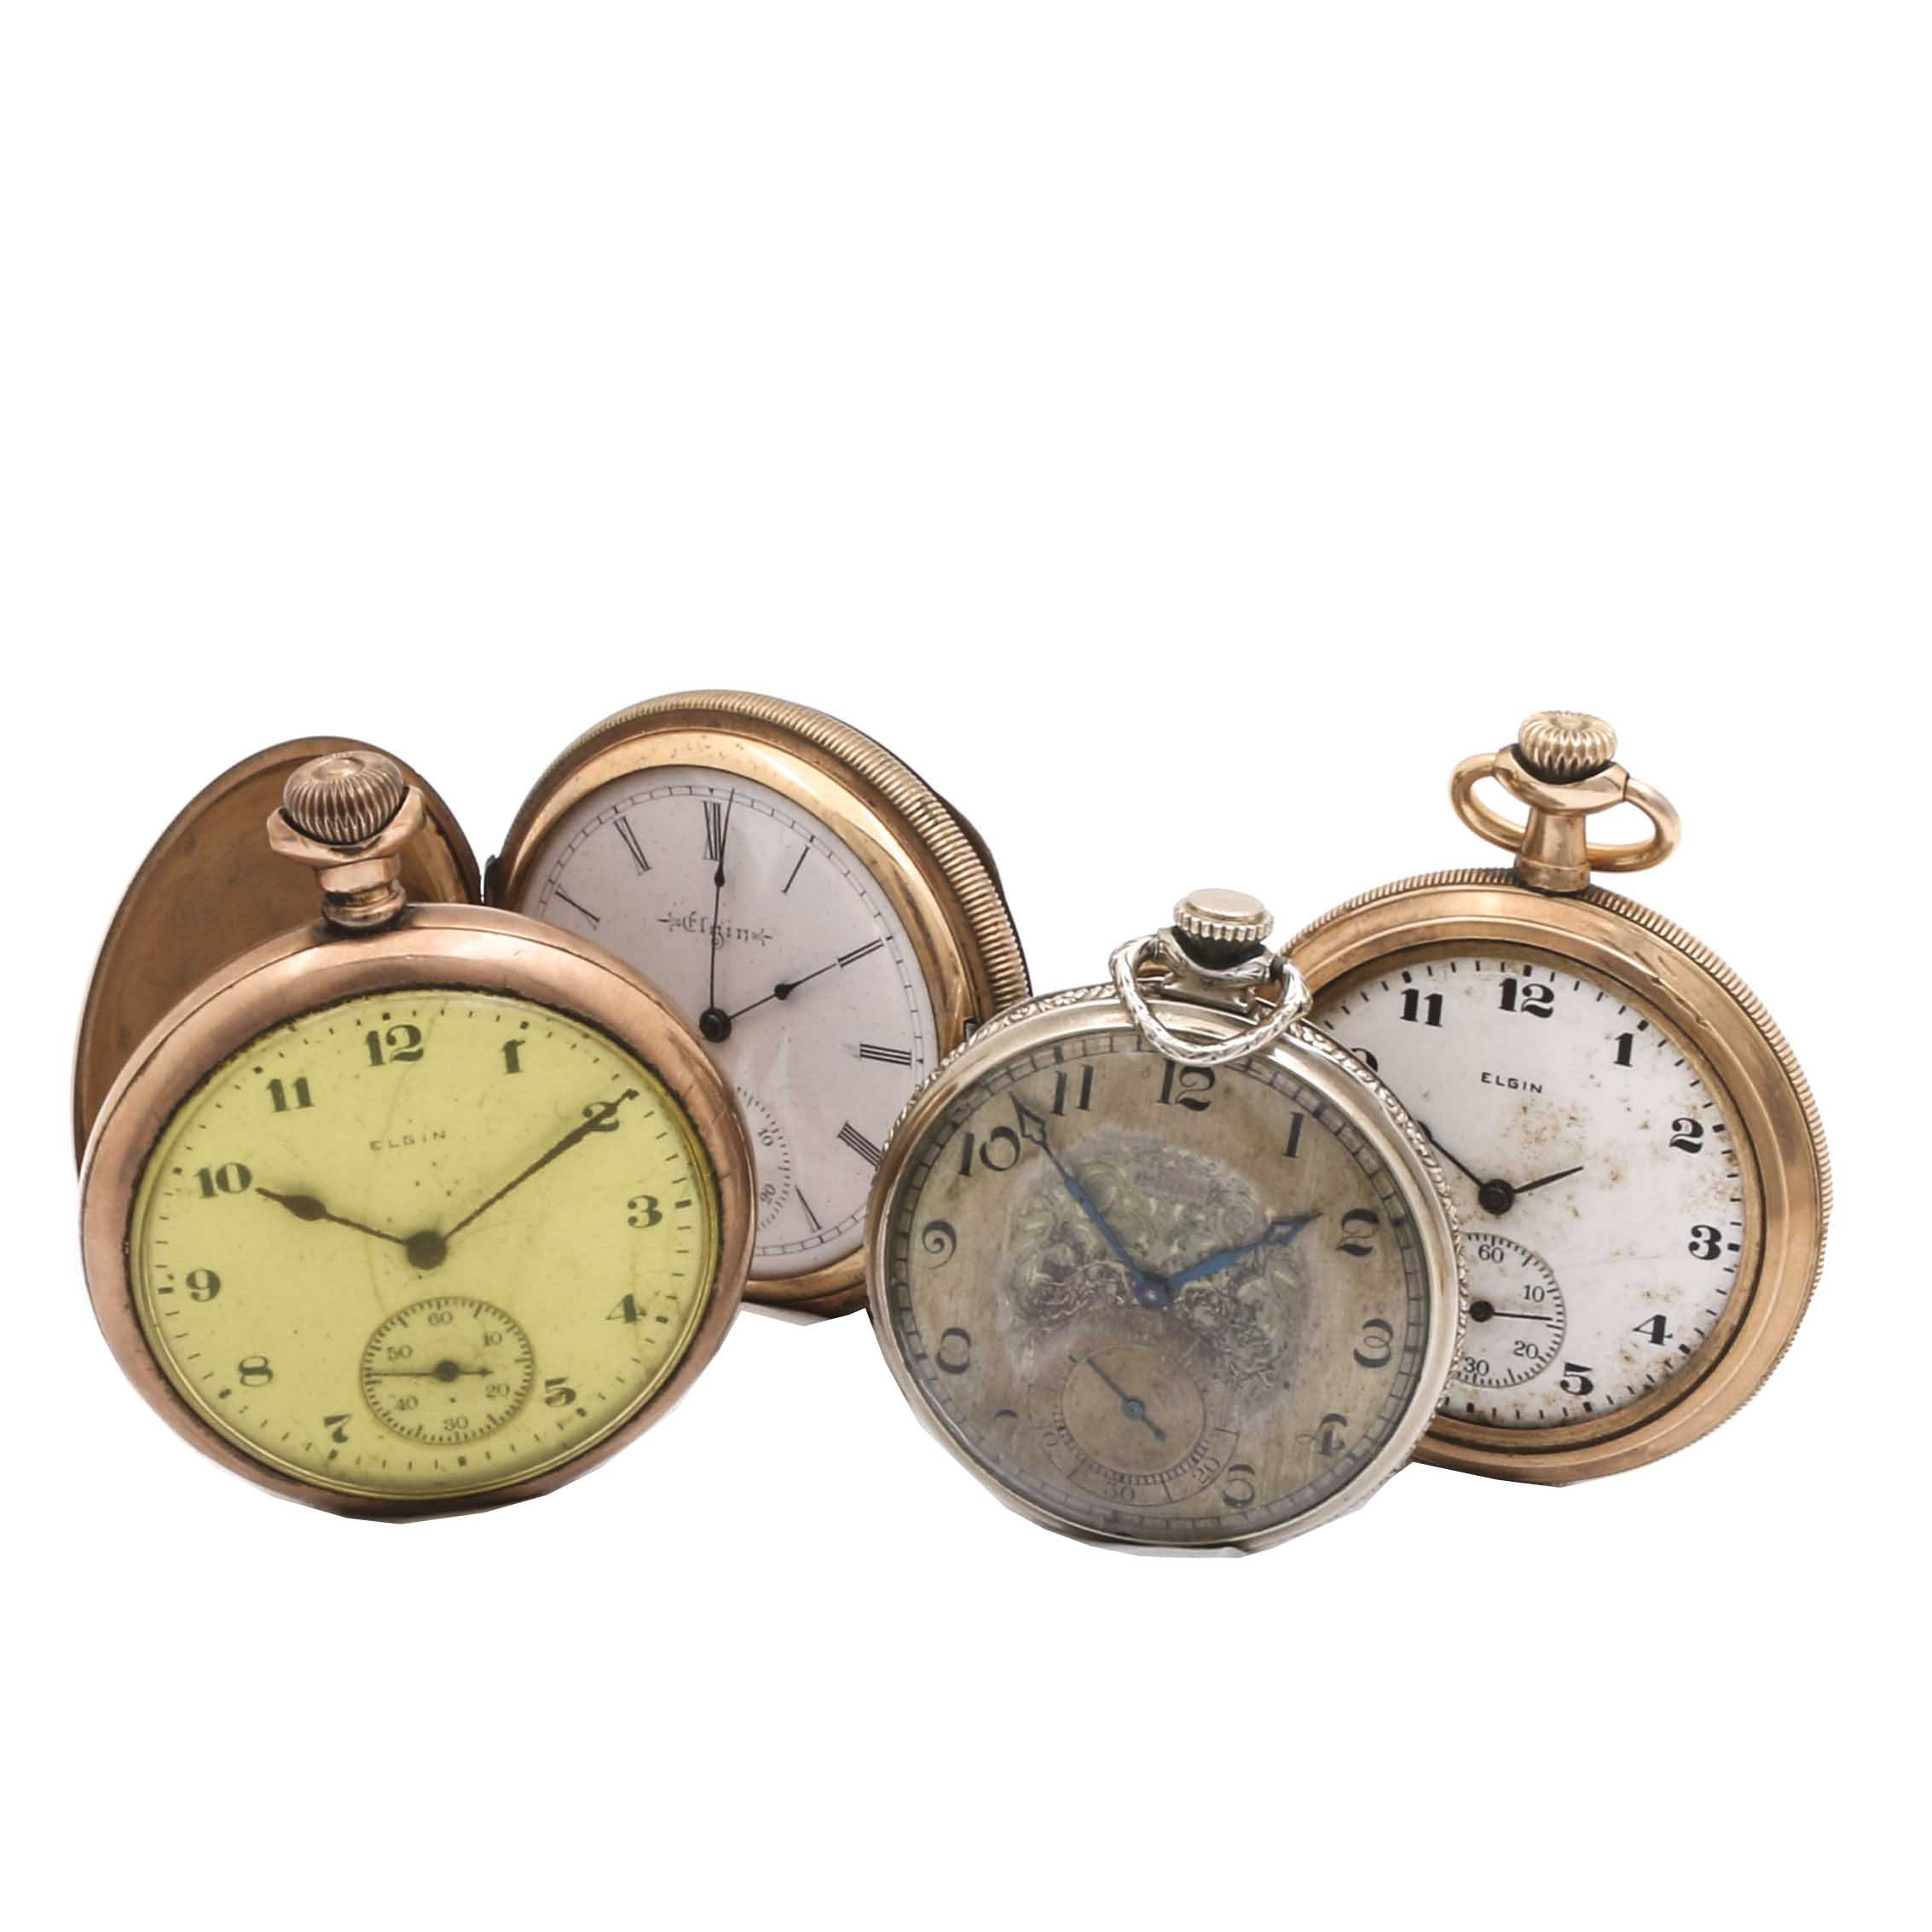 Four Early 20th Century Pocket Watches by Elgin